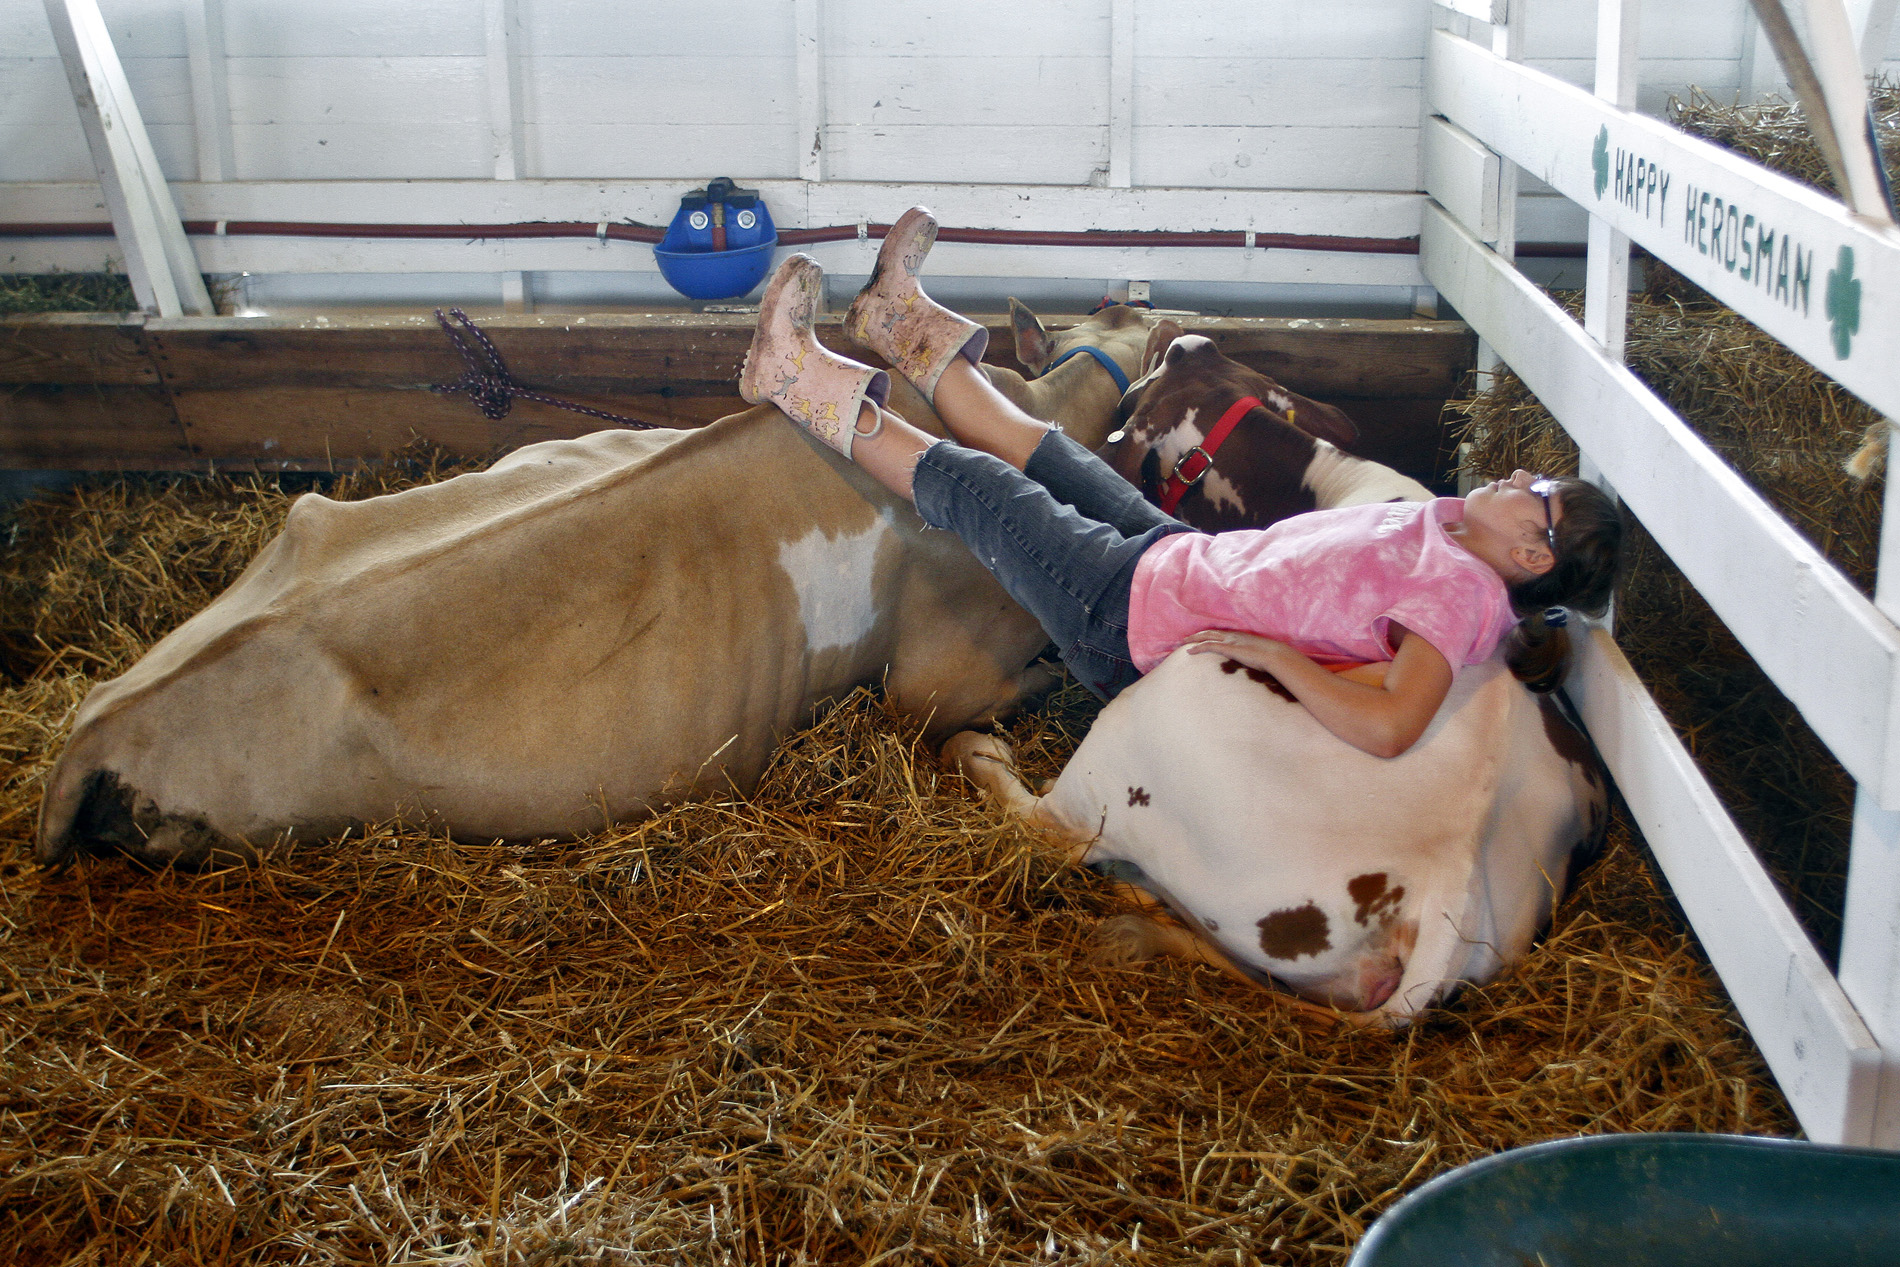 Kimmie Eaton, 10, of Centreville rests on her two dairy cows inside a barn at the St. Joseph County Grange Fair. This is Eaton's first year participating in 4-H.